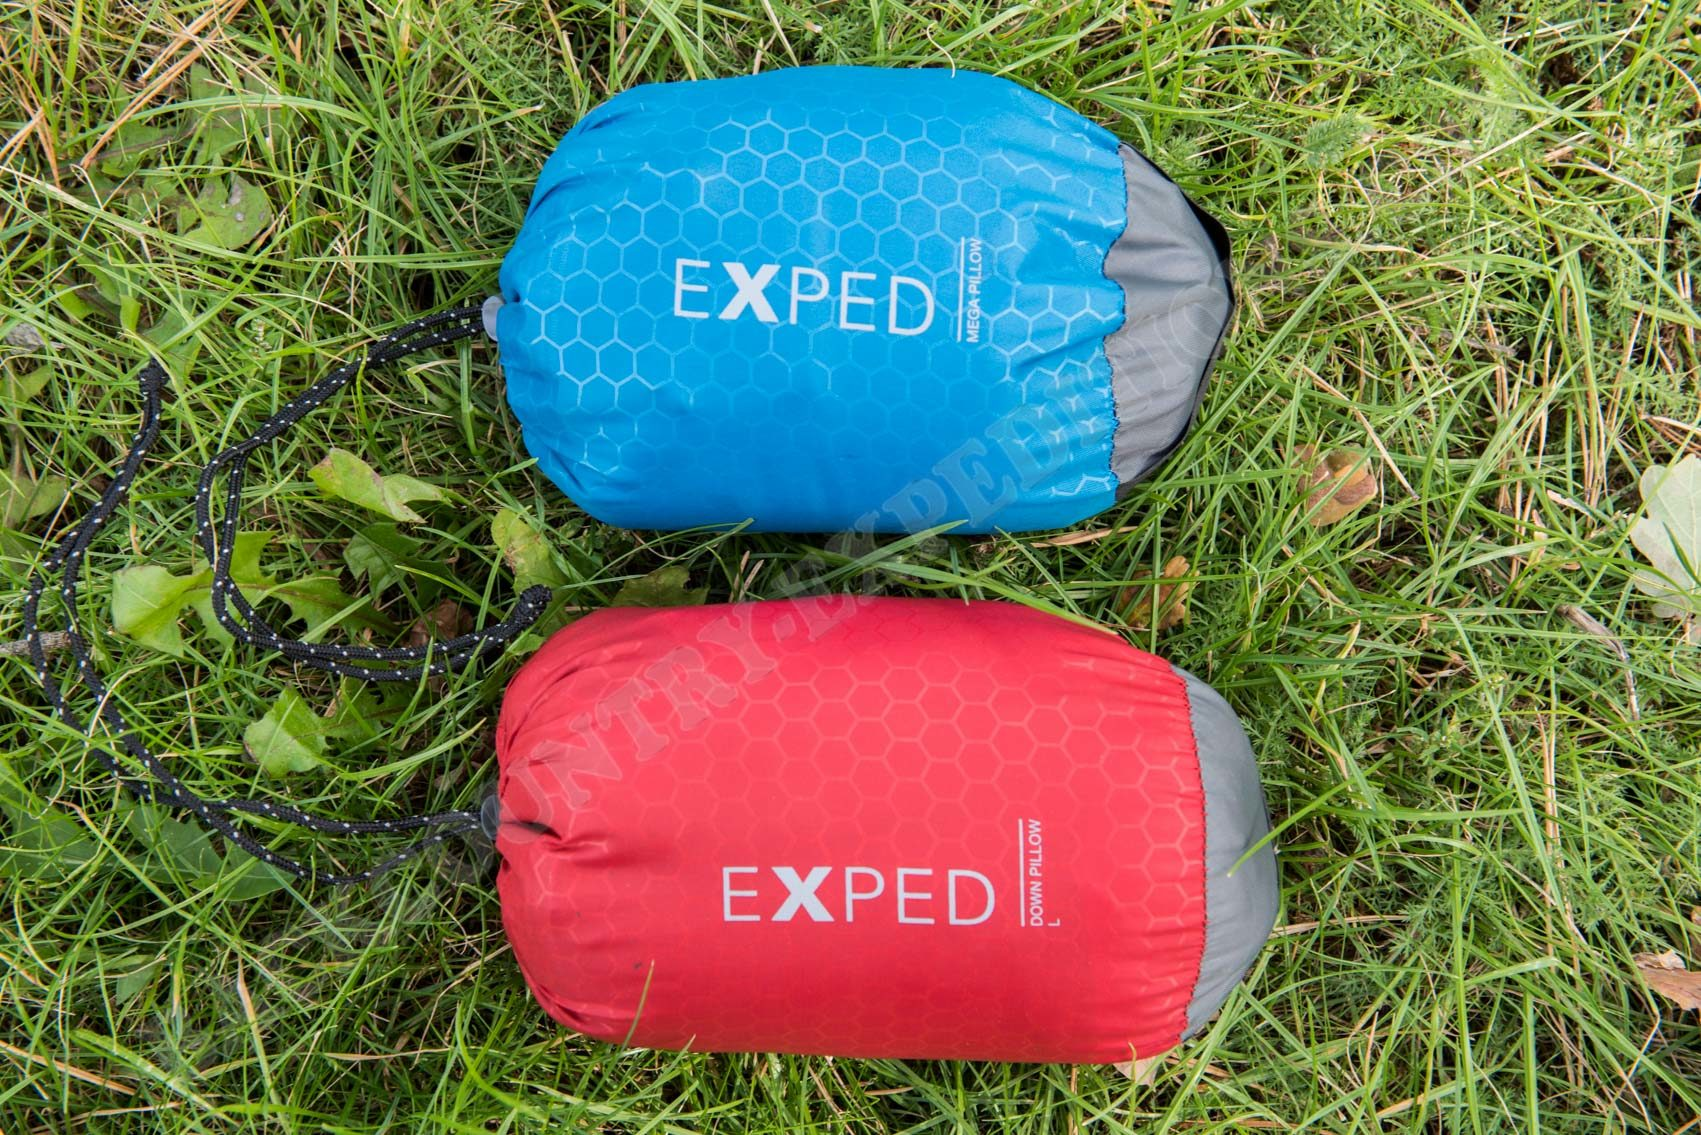 exped down pillow mega pillow backcountry expeditions